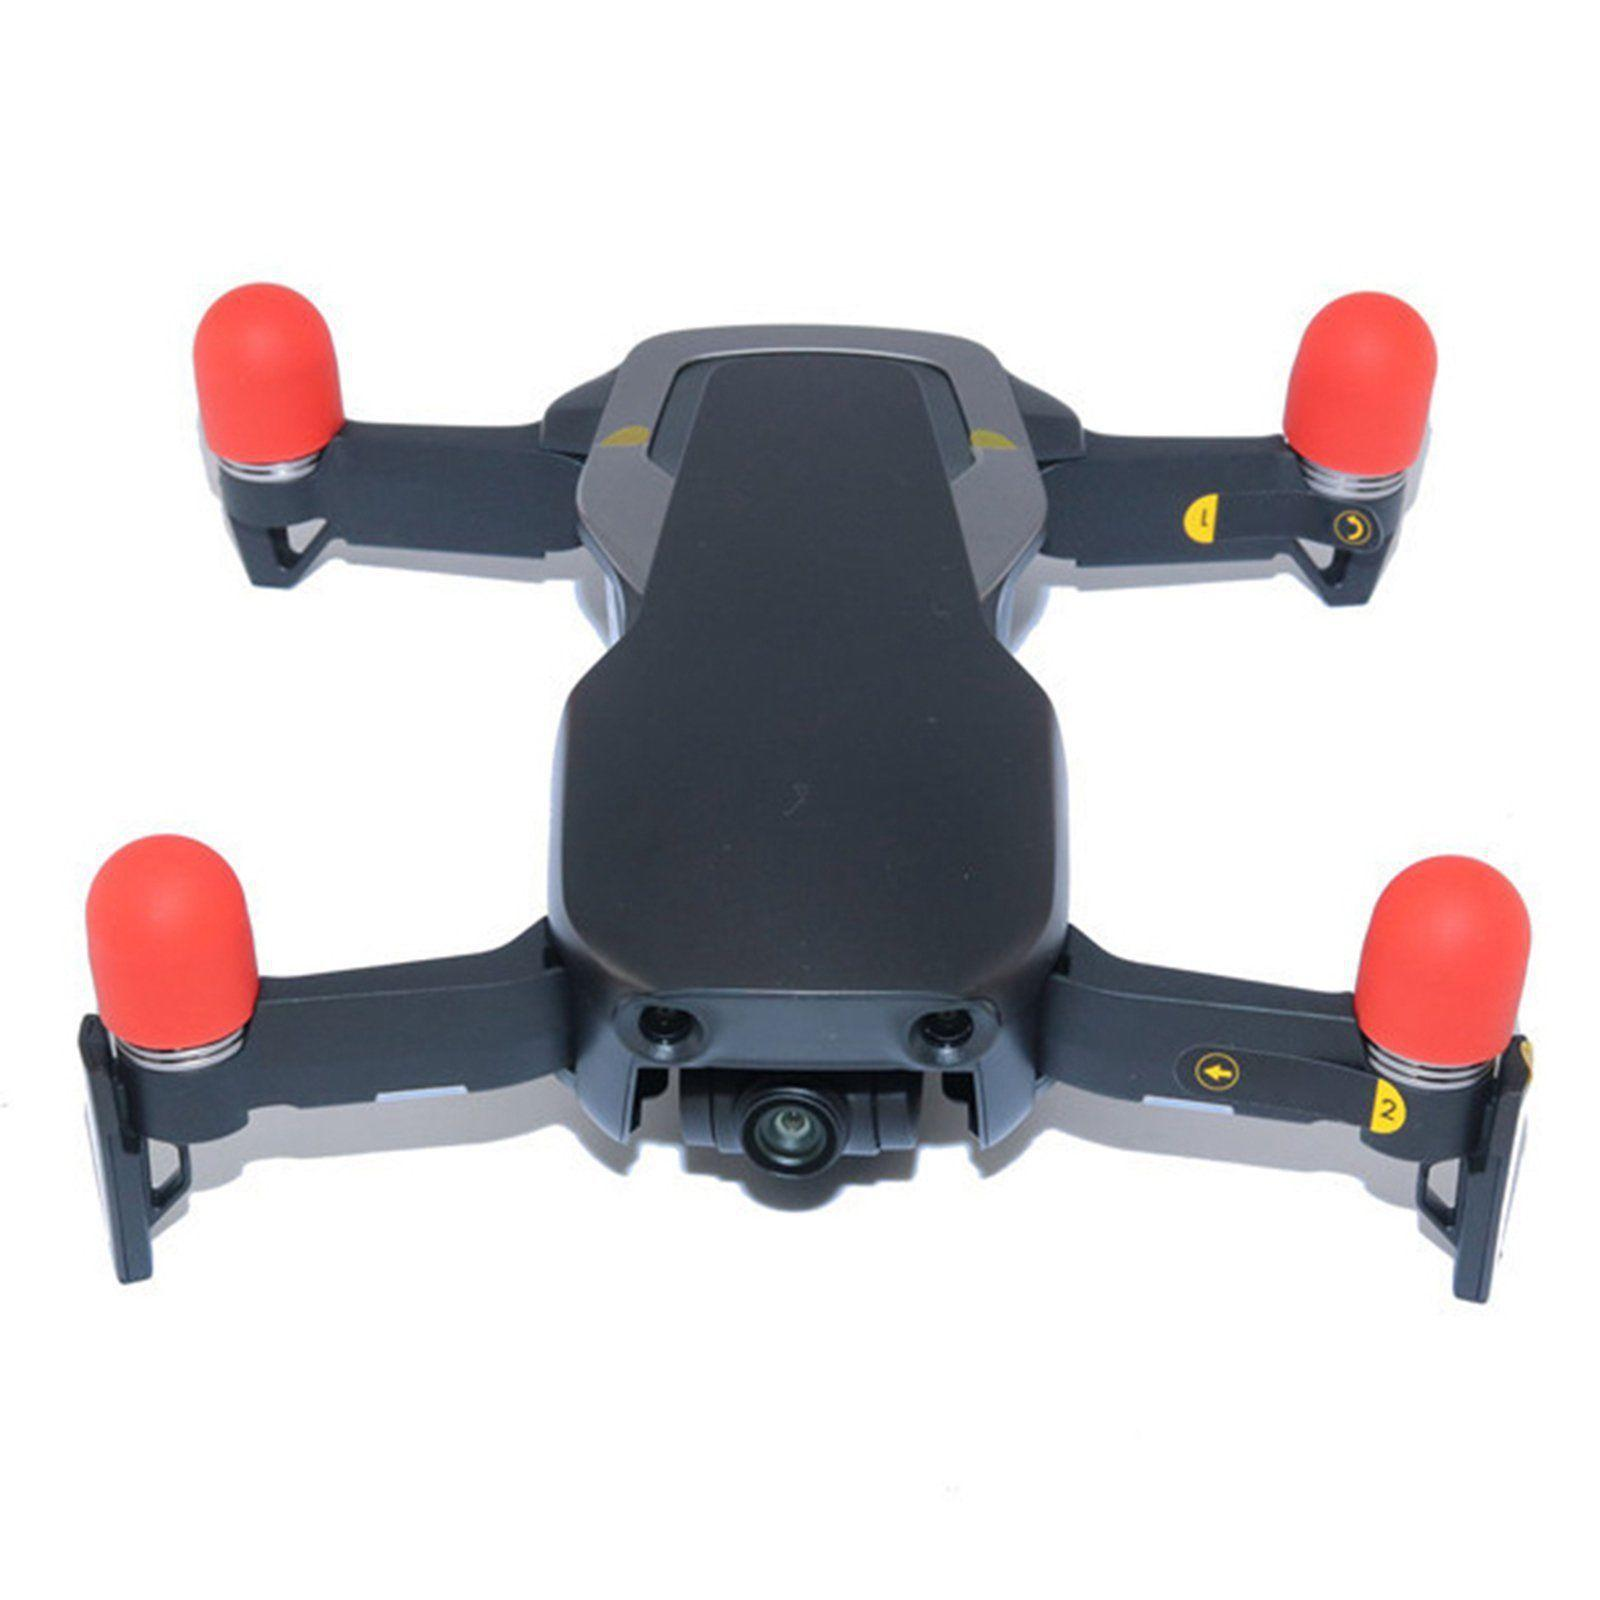 Buy Sell Cheapest Dji Spark Mavic Best Quality Product Deals Dual Hook Bracket Adapter With Neck Strap Air Sa Yanyi 4pcs Motor Cover Silicone Rubber Case Cap Sleeve Guard Protective Accessories For